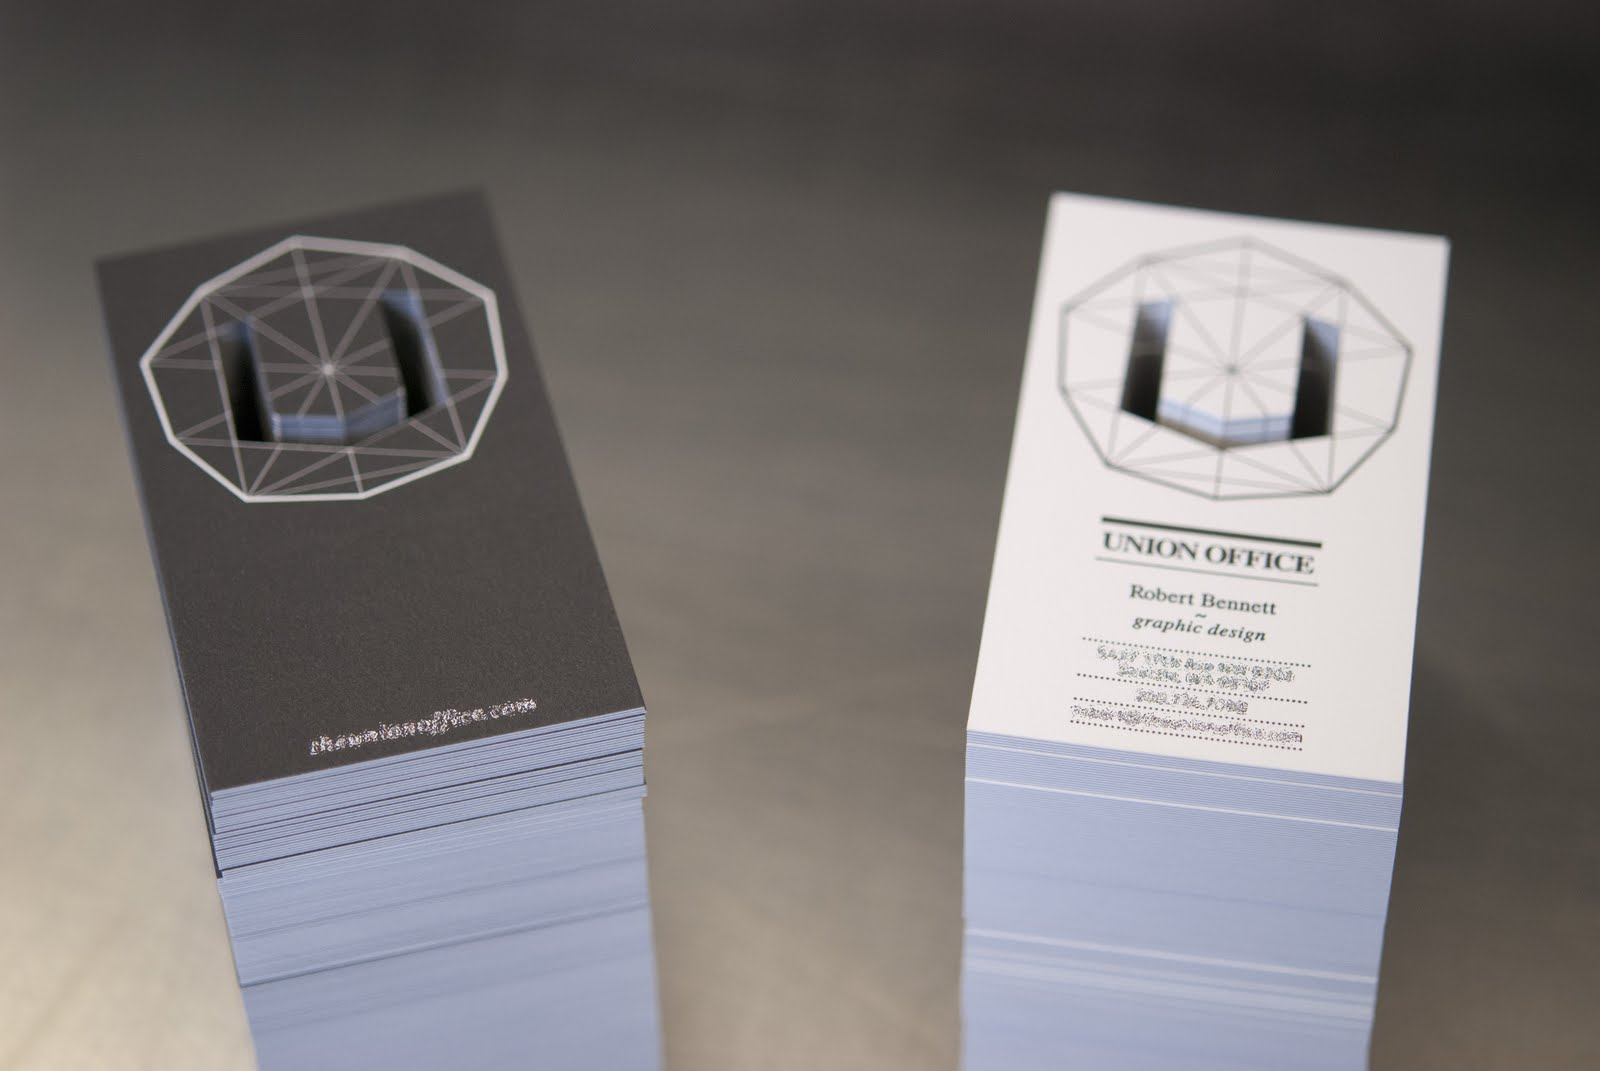 Evolution press inc robert bennett business card printed on eames natural white cover with letterpress printing on one side and offset printing on the other we think these business cards are sturdy colourmoves